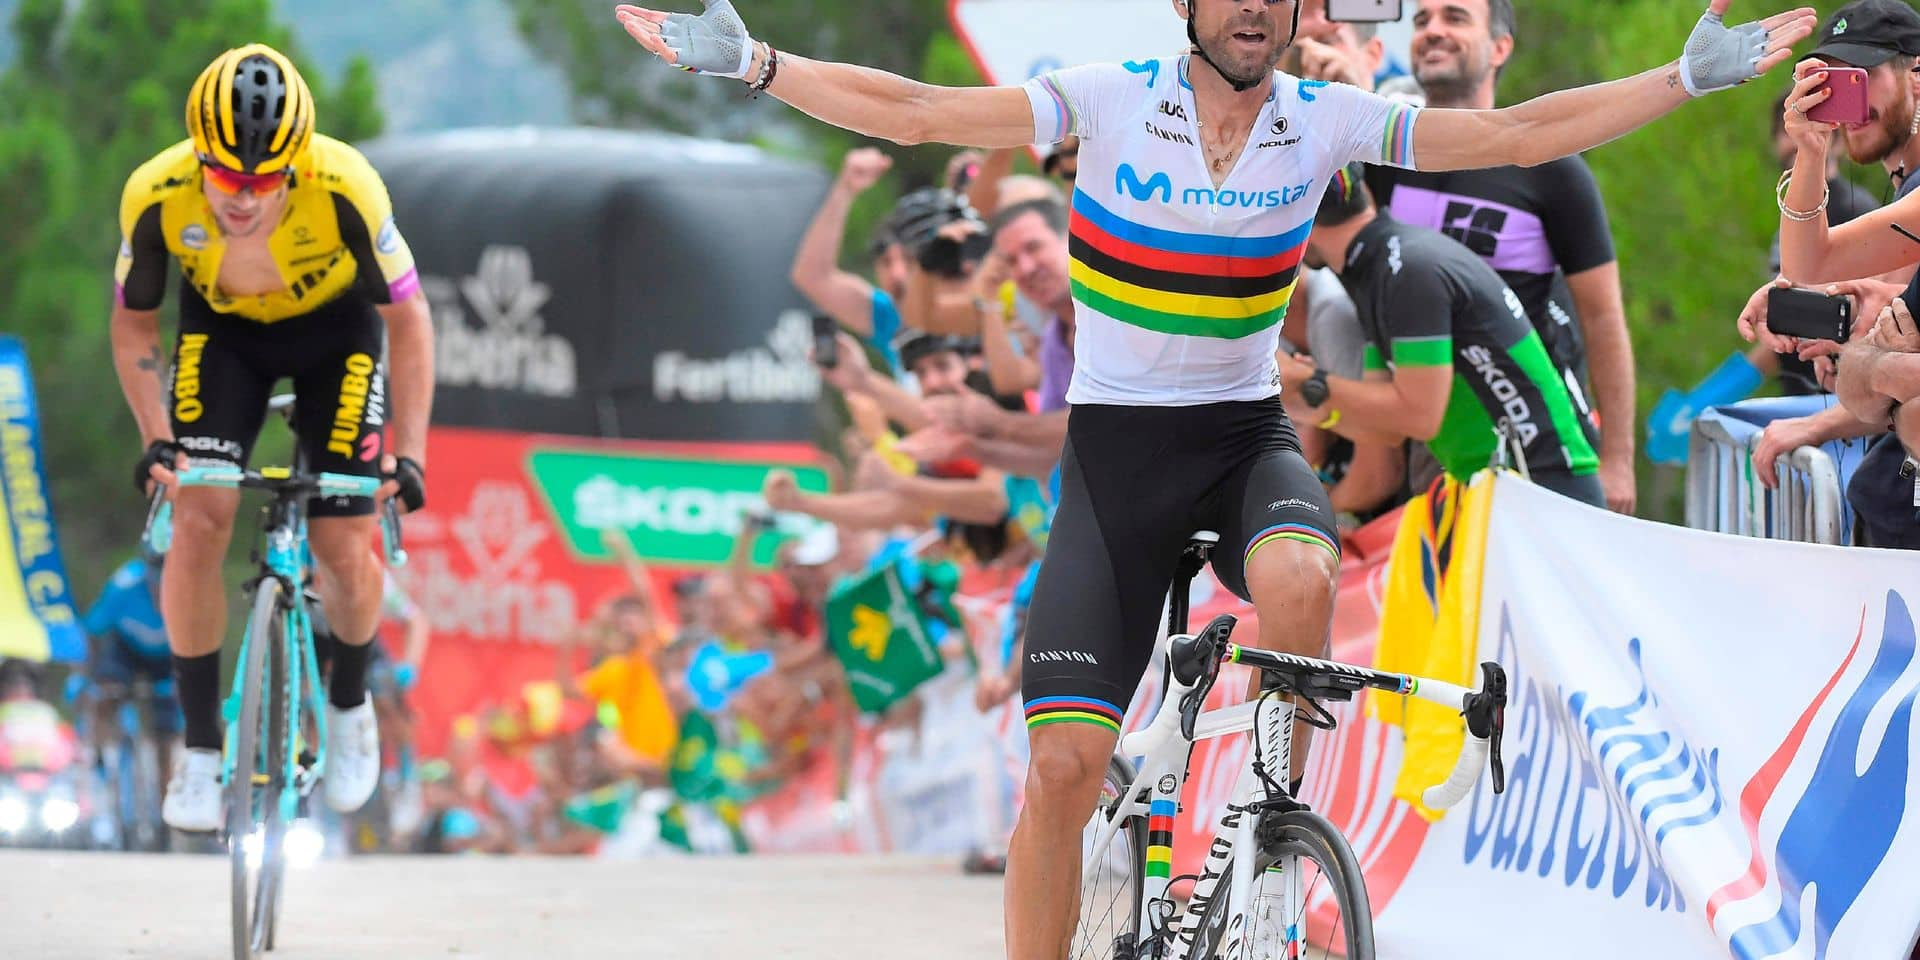 Team Movistar rider Spain's Alejandro Valverde (R) crosses the finish line in front of Team Jumbo rider Slovenia's Primoz Roglic (L) and wins the seventh stage of the 2019 La Vuelta cycling tour of Spain, a 183, 2 km race from Onda to Mas de la Costa on August 30, 2019 in Mas de la Costa. (Photo by JOSE JORDAN / AFP)